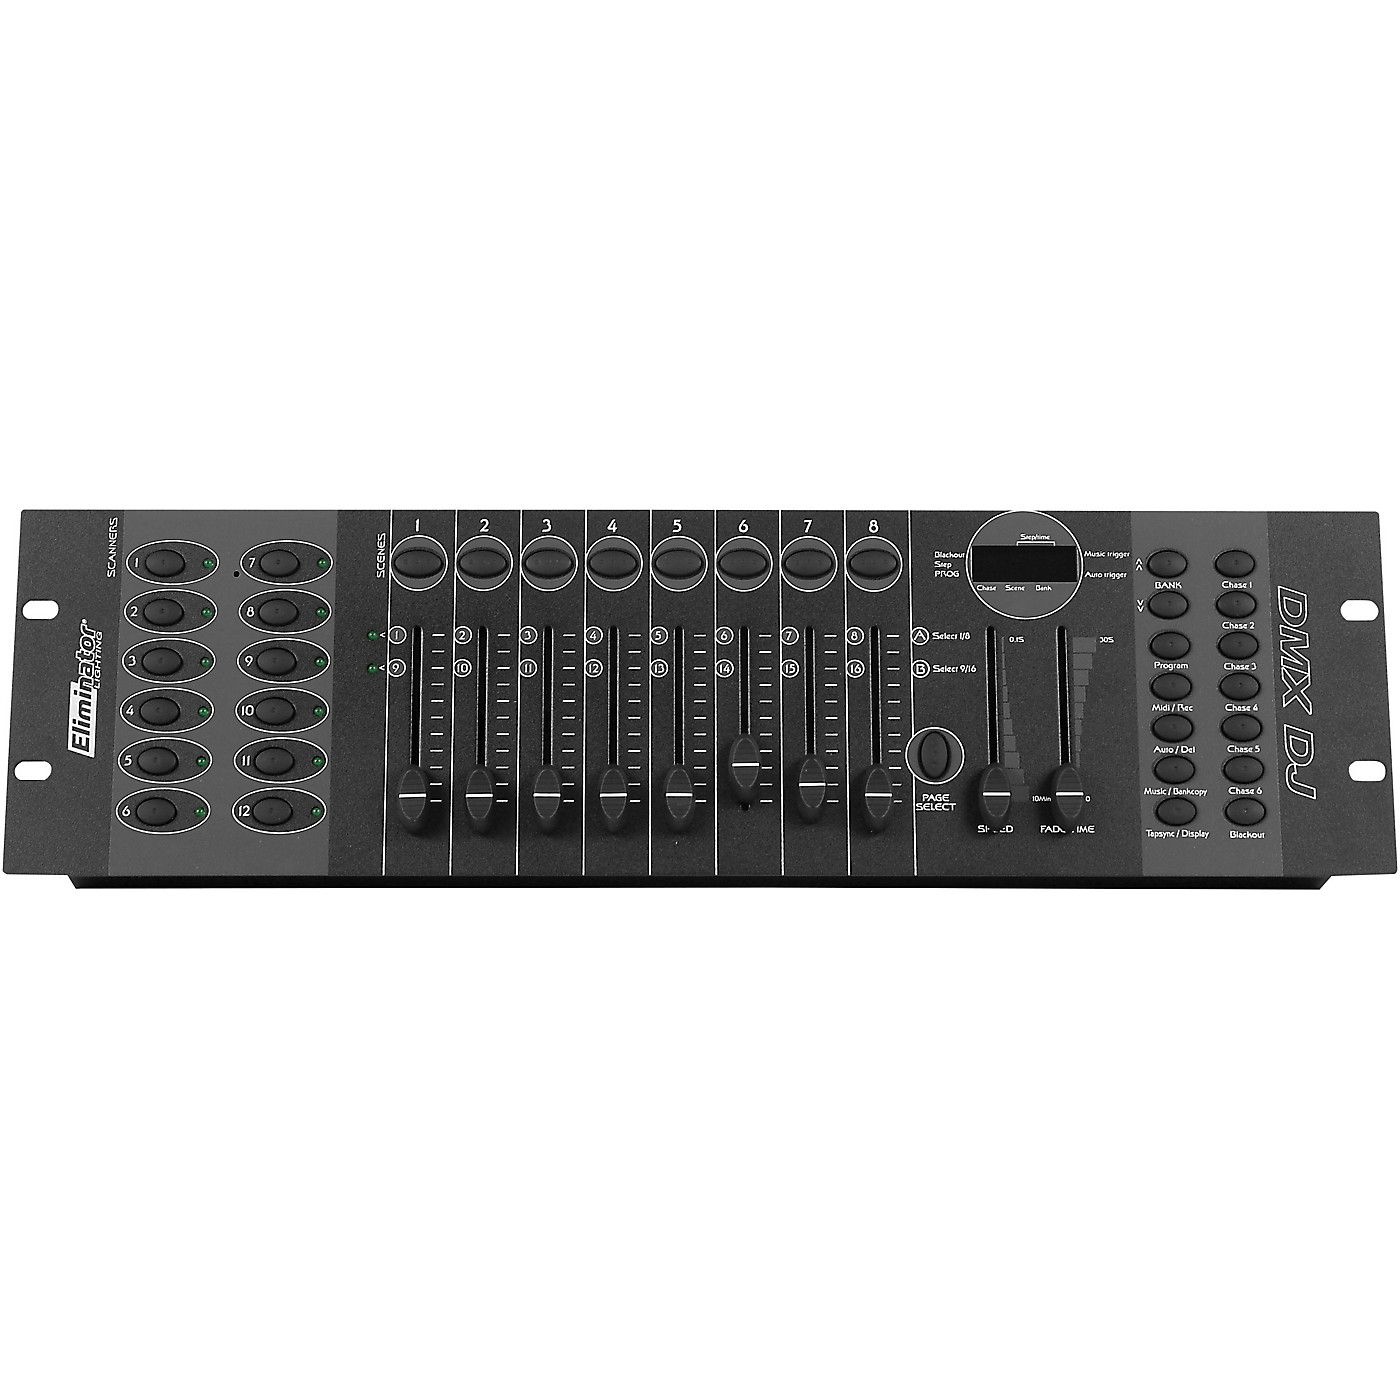 Eliminator Lighting DMX DJ Lighting Controller thumbnail